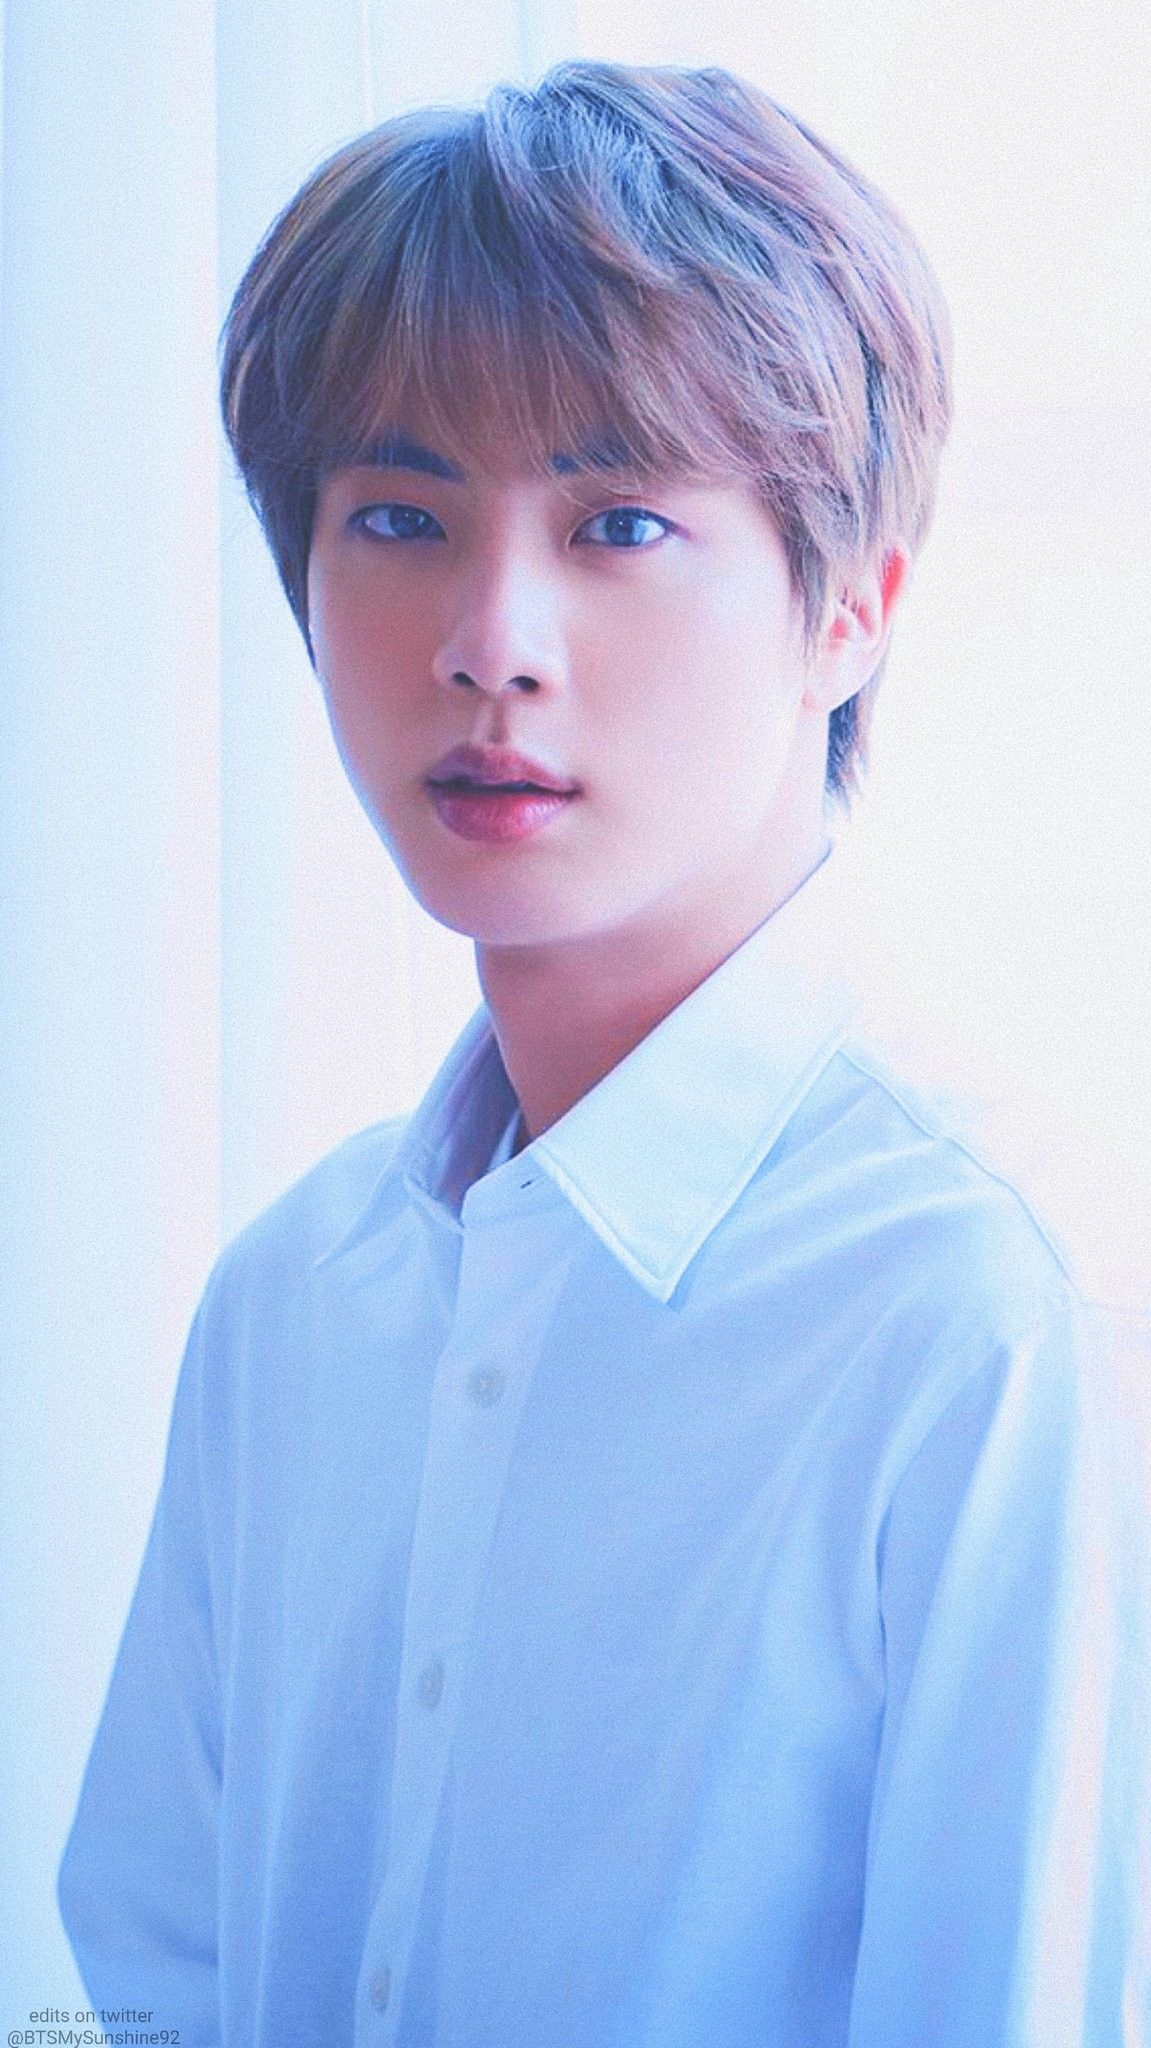 Vt X Bts Wallpapers Bts Jin Seokjin Bts Worldwide Handsome